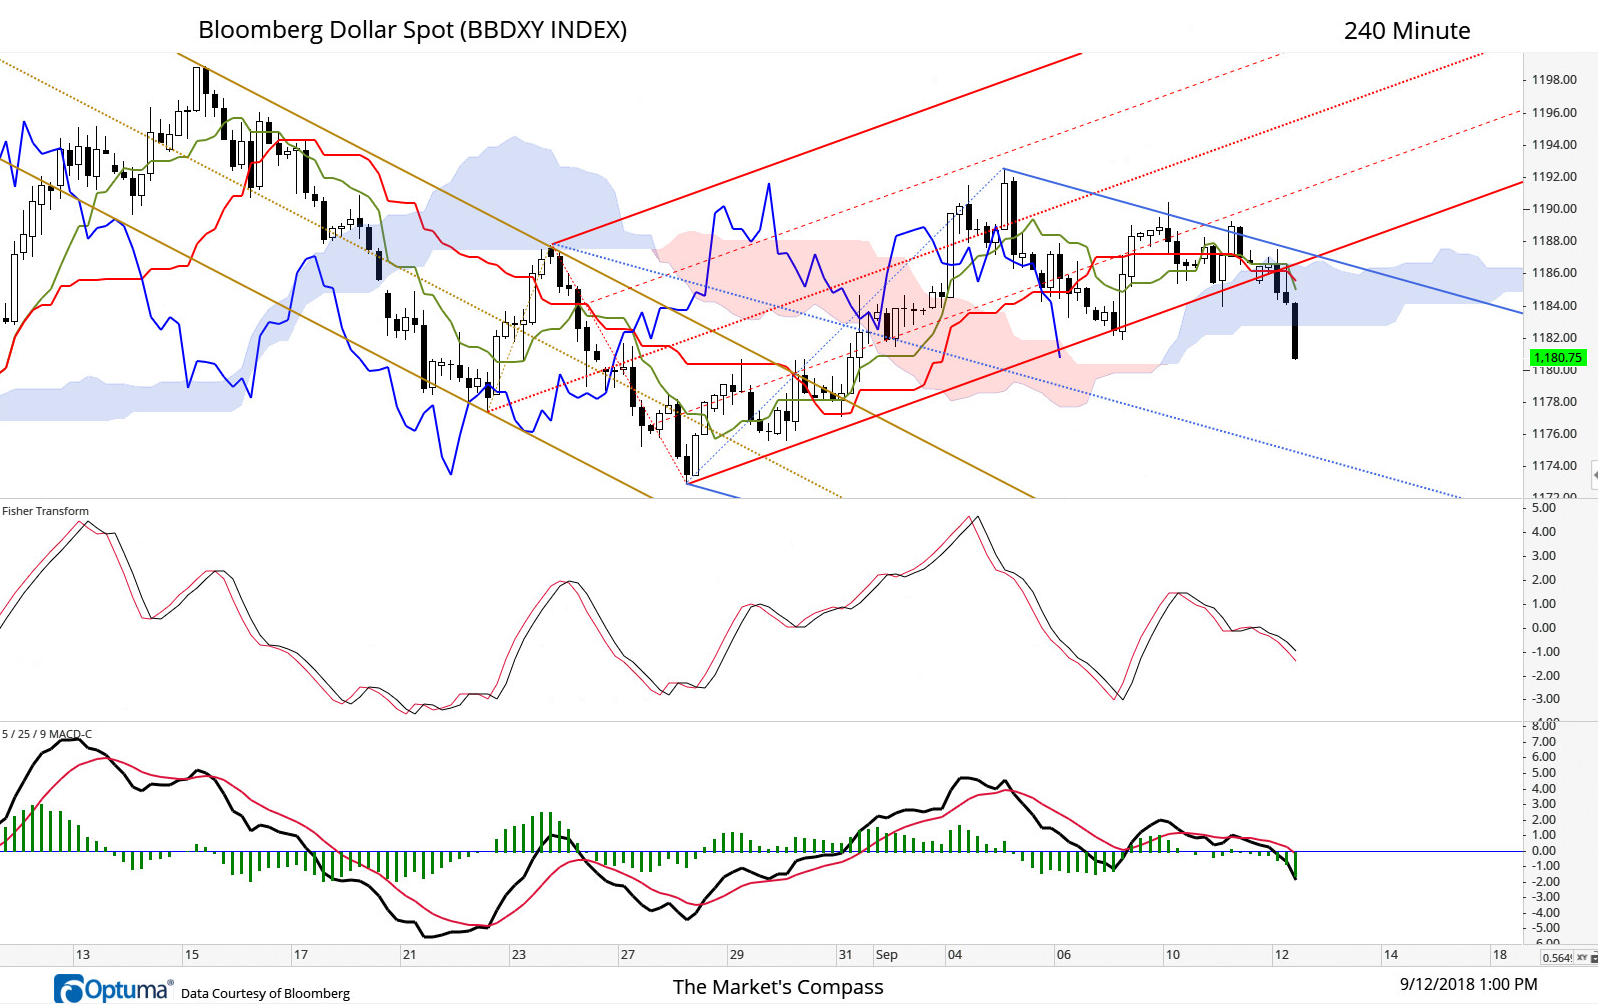 240- Minute BBDXY. Price was unable to break above and hold onto the ground above the shorter term Pitchfork's Upper Parallel (blue) on Monday and Tuesday and broke support at the Lower Parallel of the longer term Pitchfork (red) and now has fallen through the cloud confirming that counter trend rally has run its course and the second leg lower is in gear.